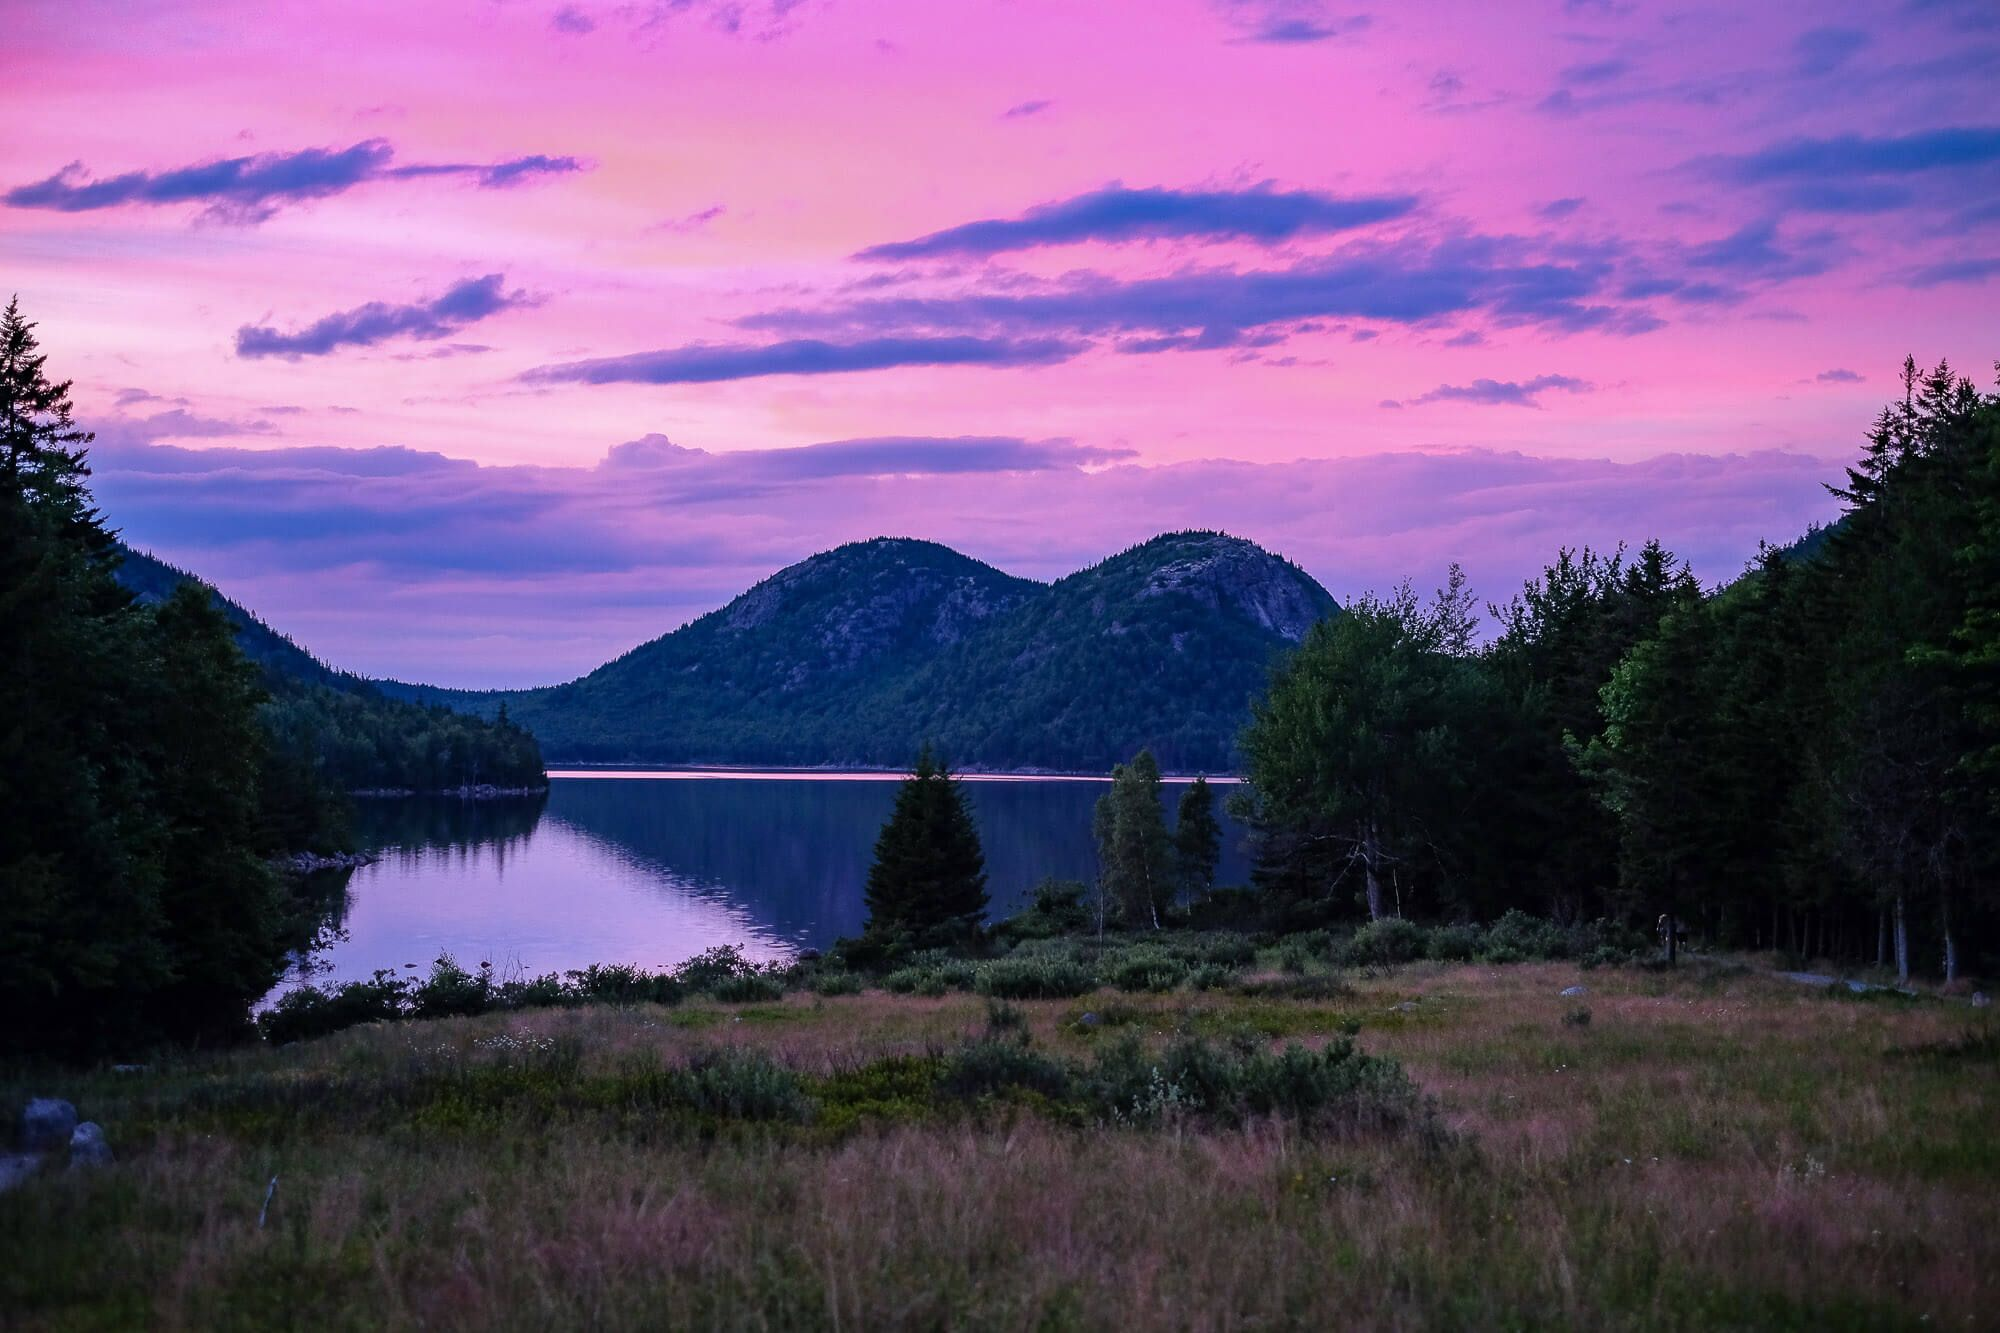 20 Photos Of Bar Harbor To Inspire You To Visit Musings